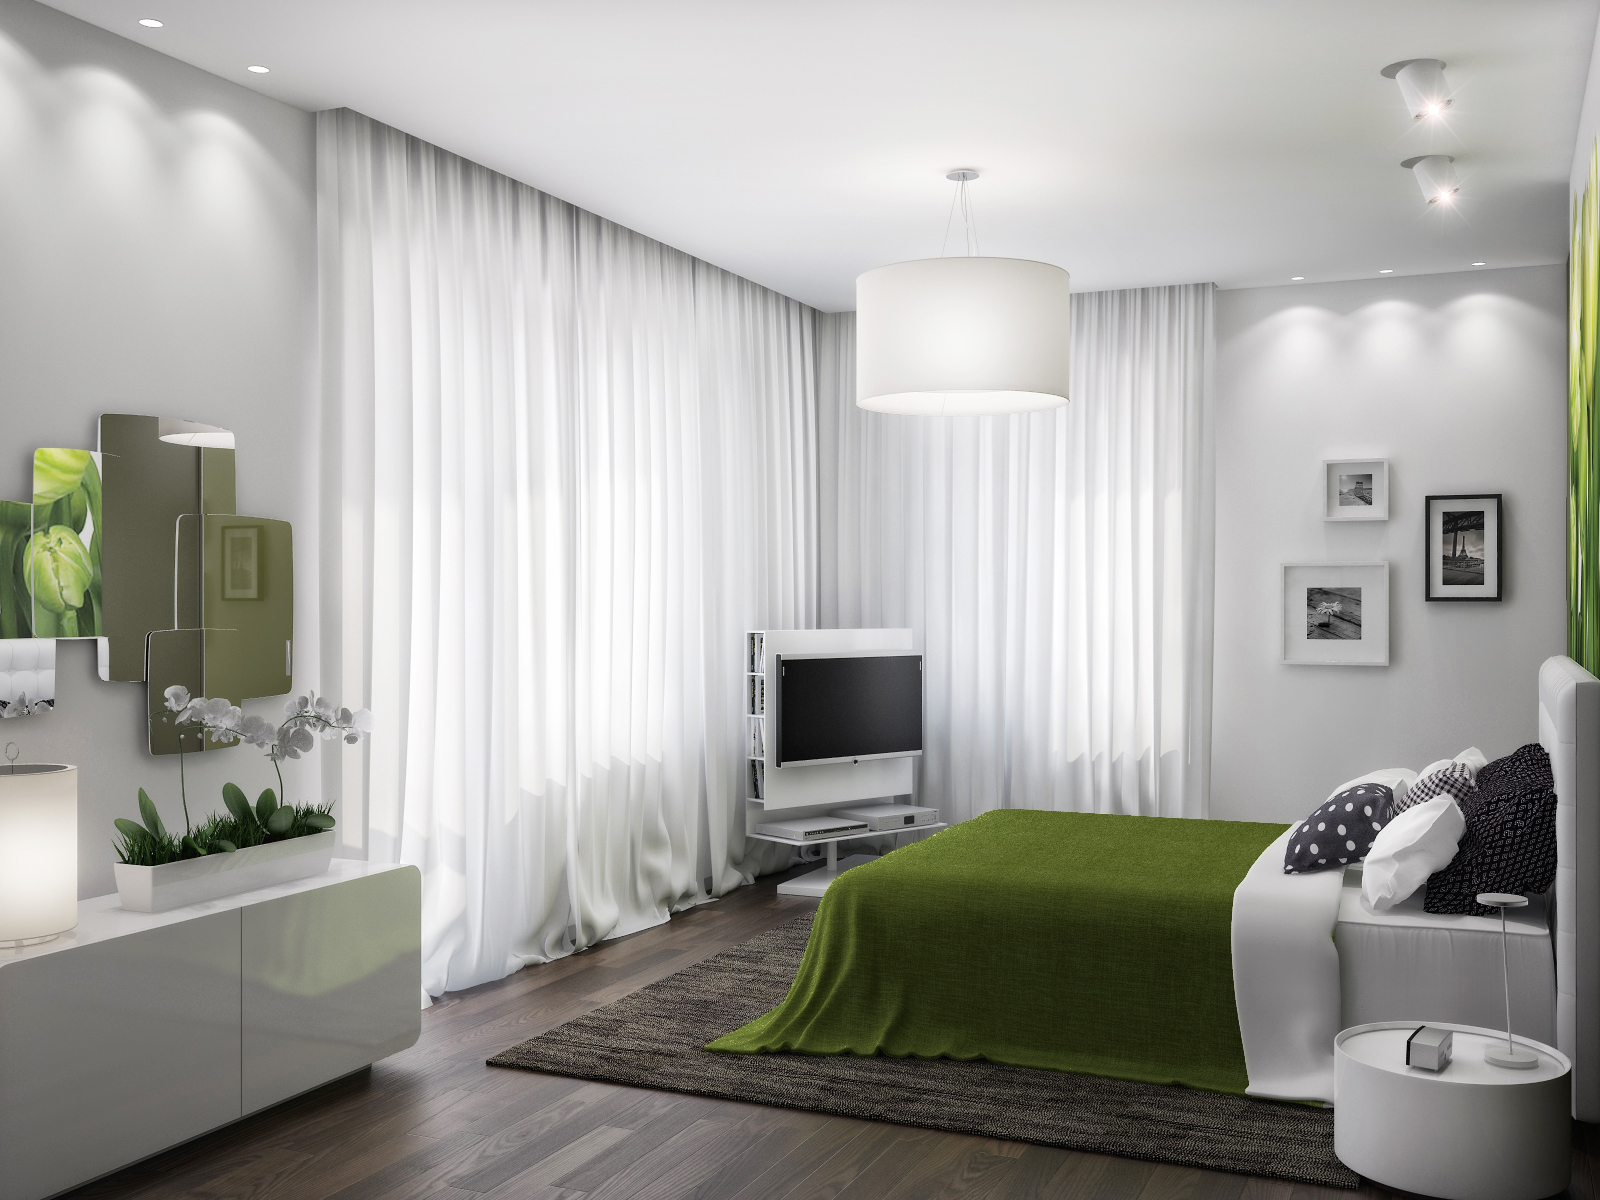 Green white bedroom scheme interior design ideas for Bedroom ideas green